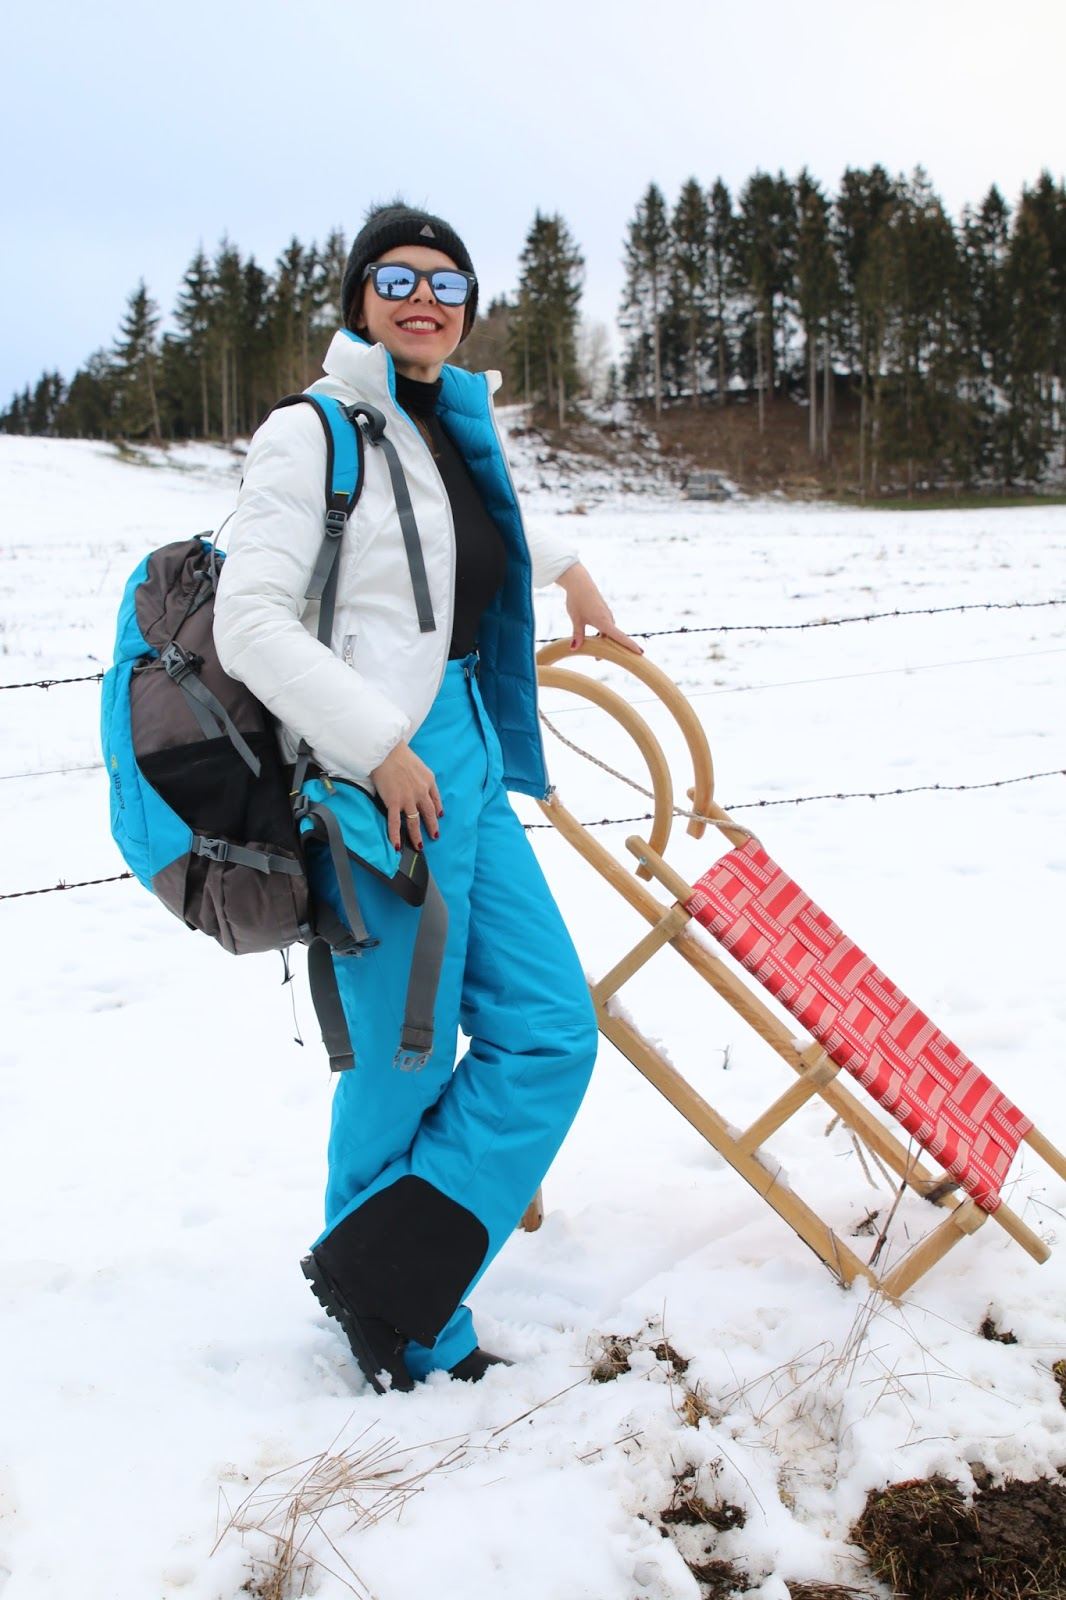 Outfit white Armani jacket, turquoise snow pants, turquoise backpack, Palladium boots